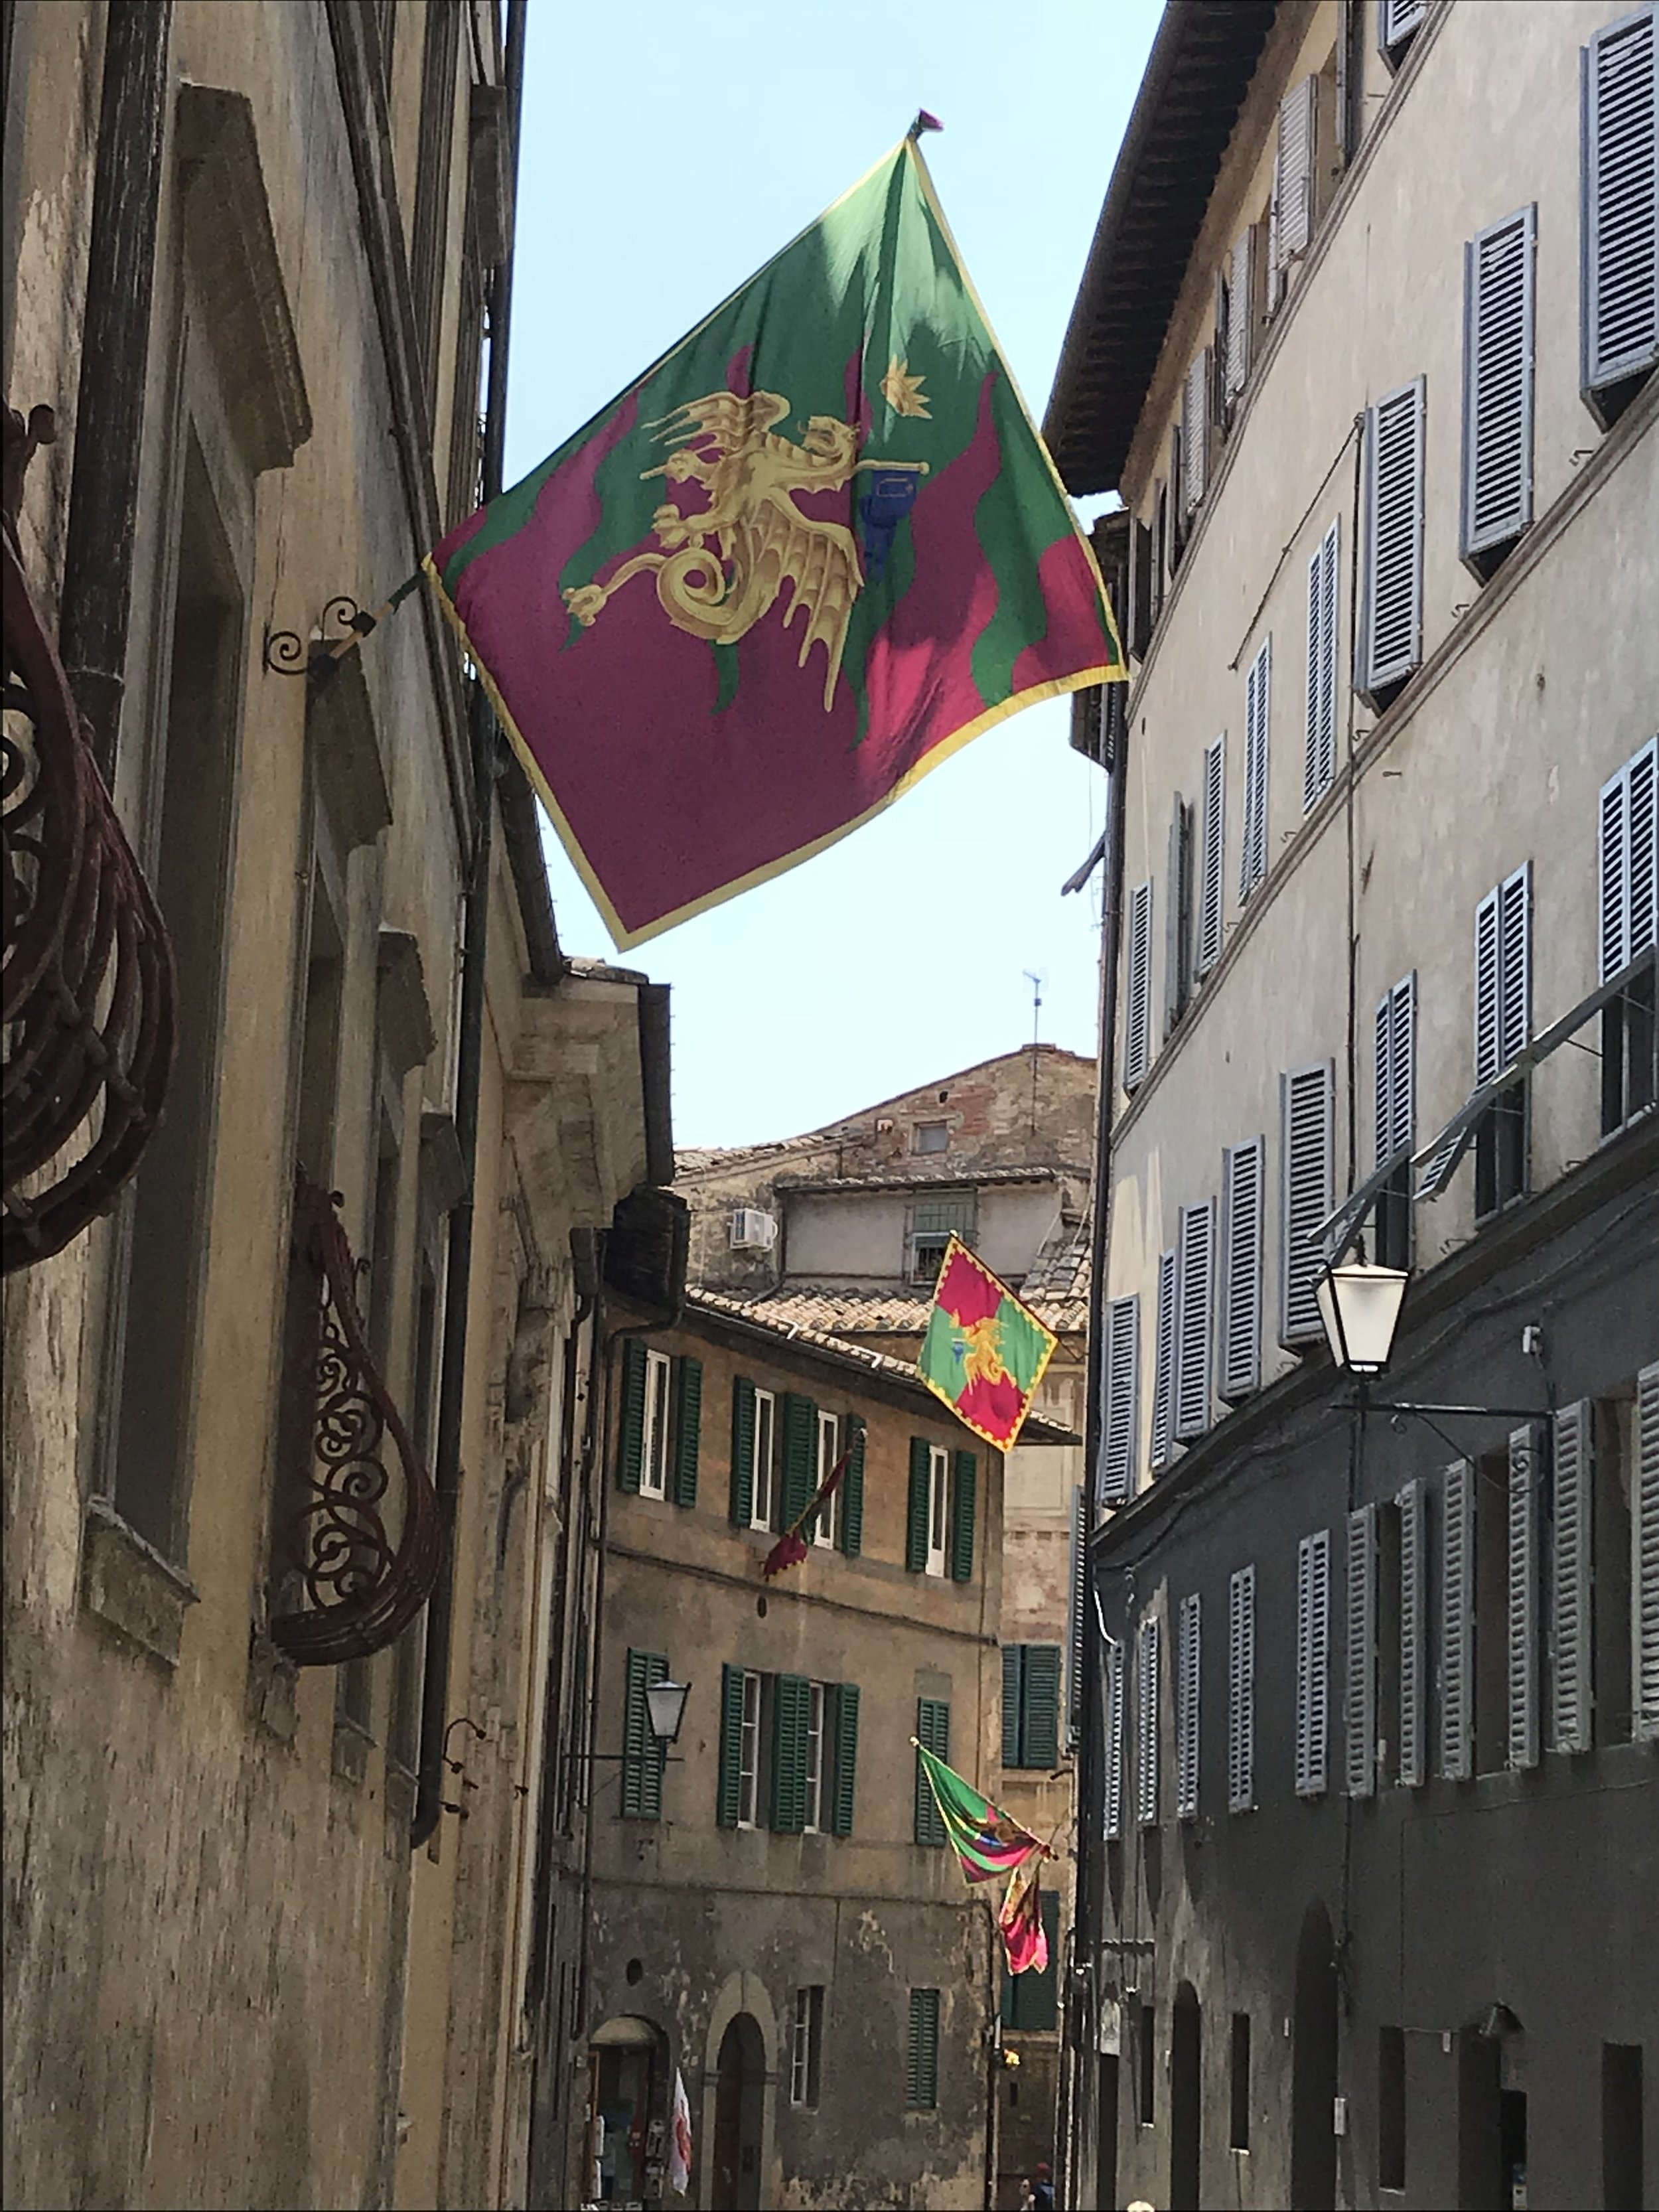 The flag of the neighborhood, Drago (Dragon), that won the famous annual medieval horse race, the Palio di Siena, on July 2, 2018, three days before we arrived. Photo credit: Mart Martin